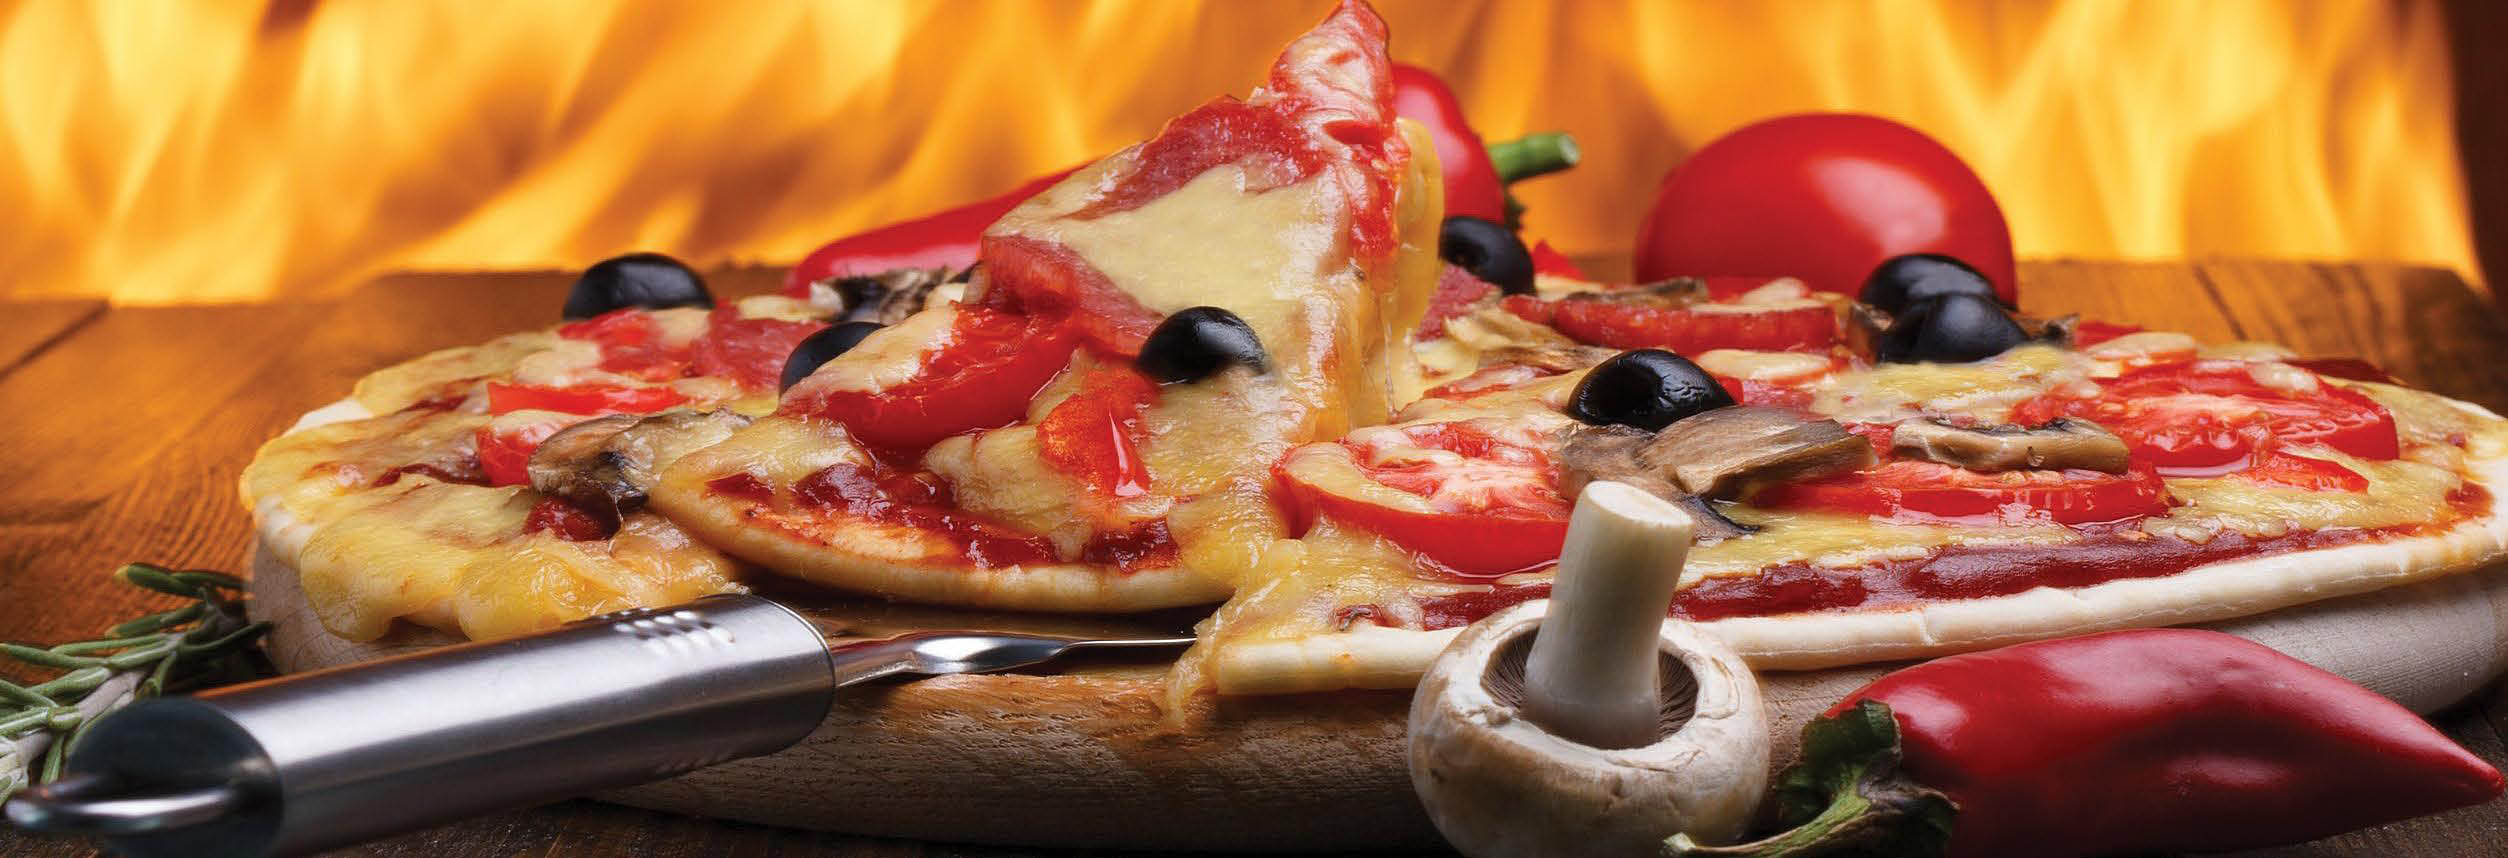 Fire Roasted Olive and Tomato Pizza in the Oven from Il Forno in Deerfield, IL banner ad